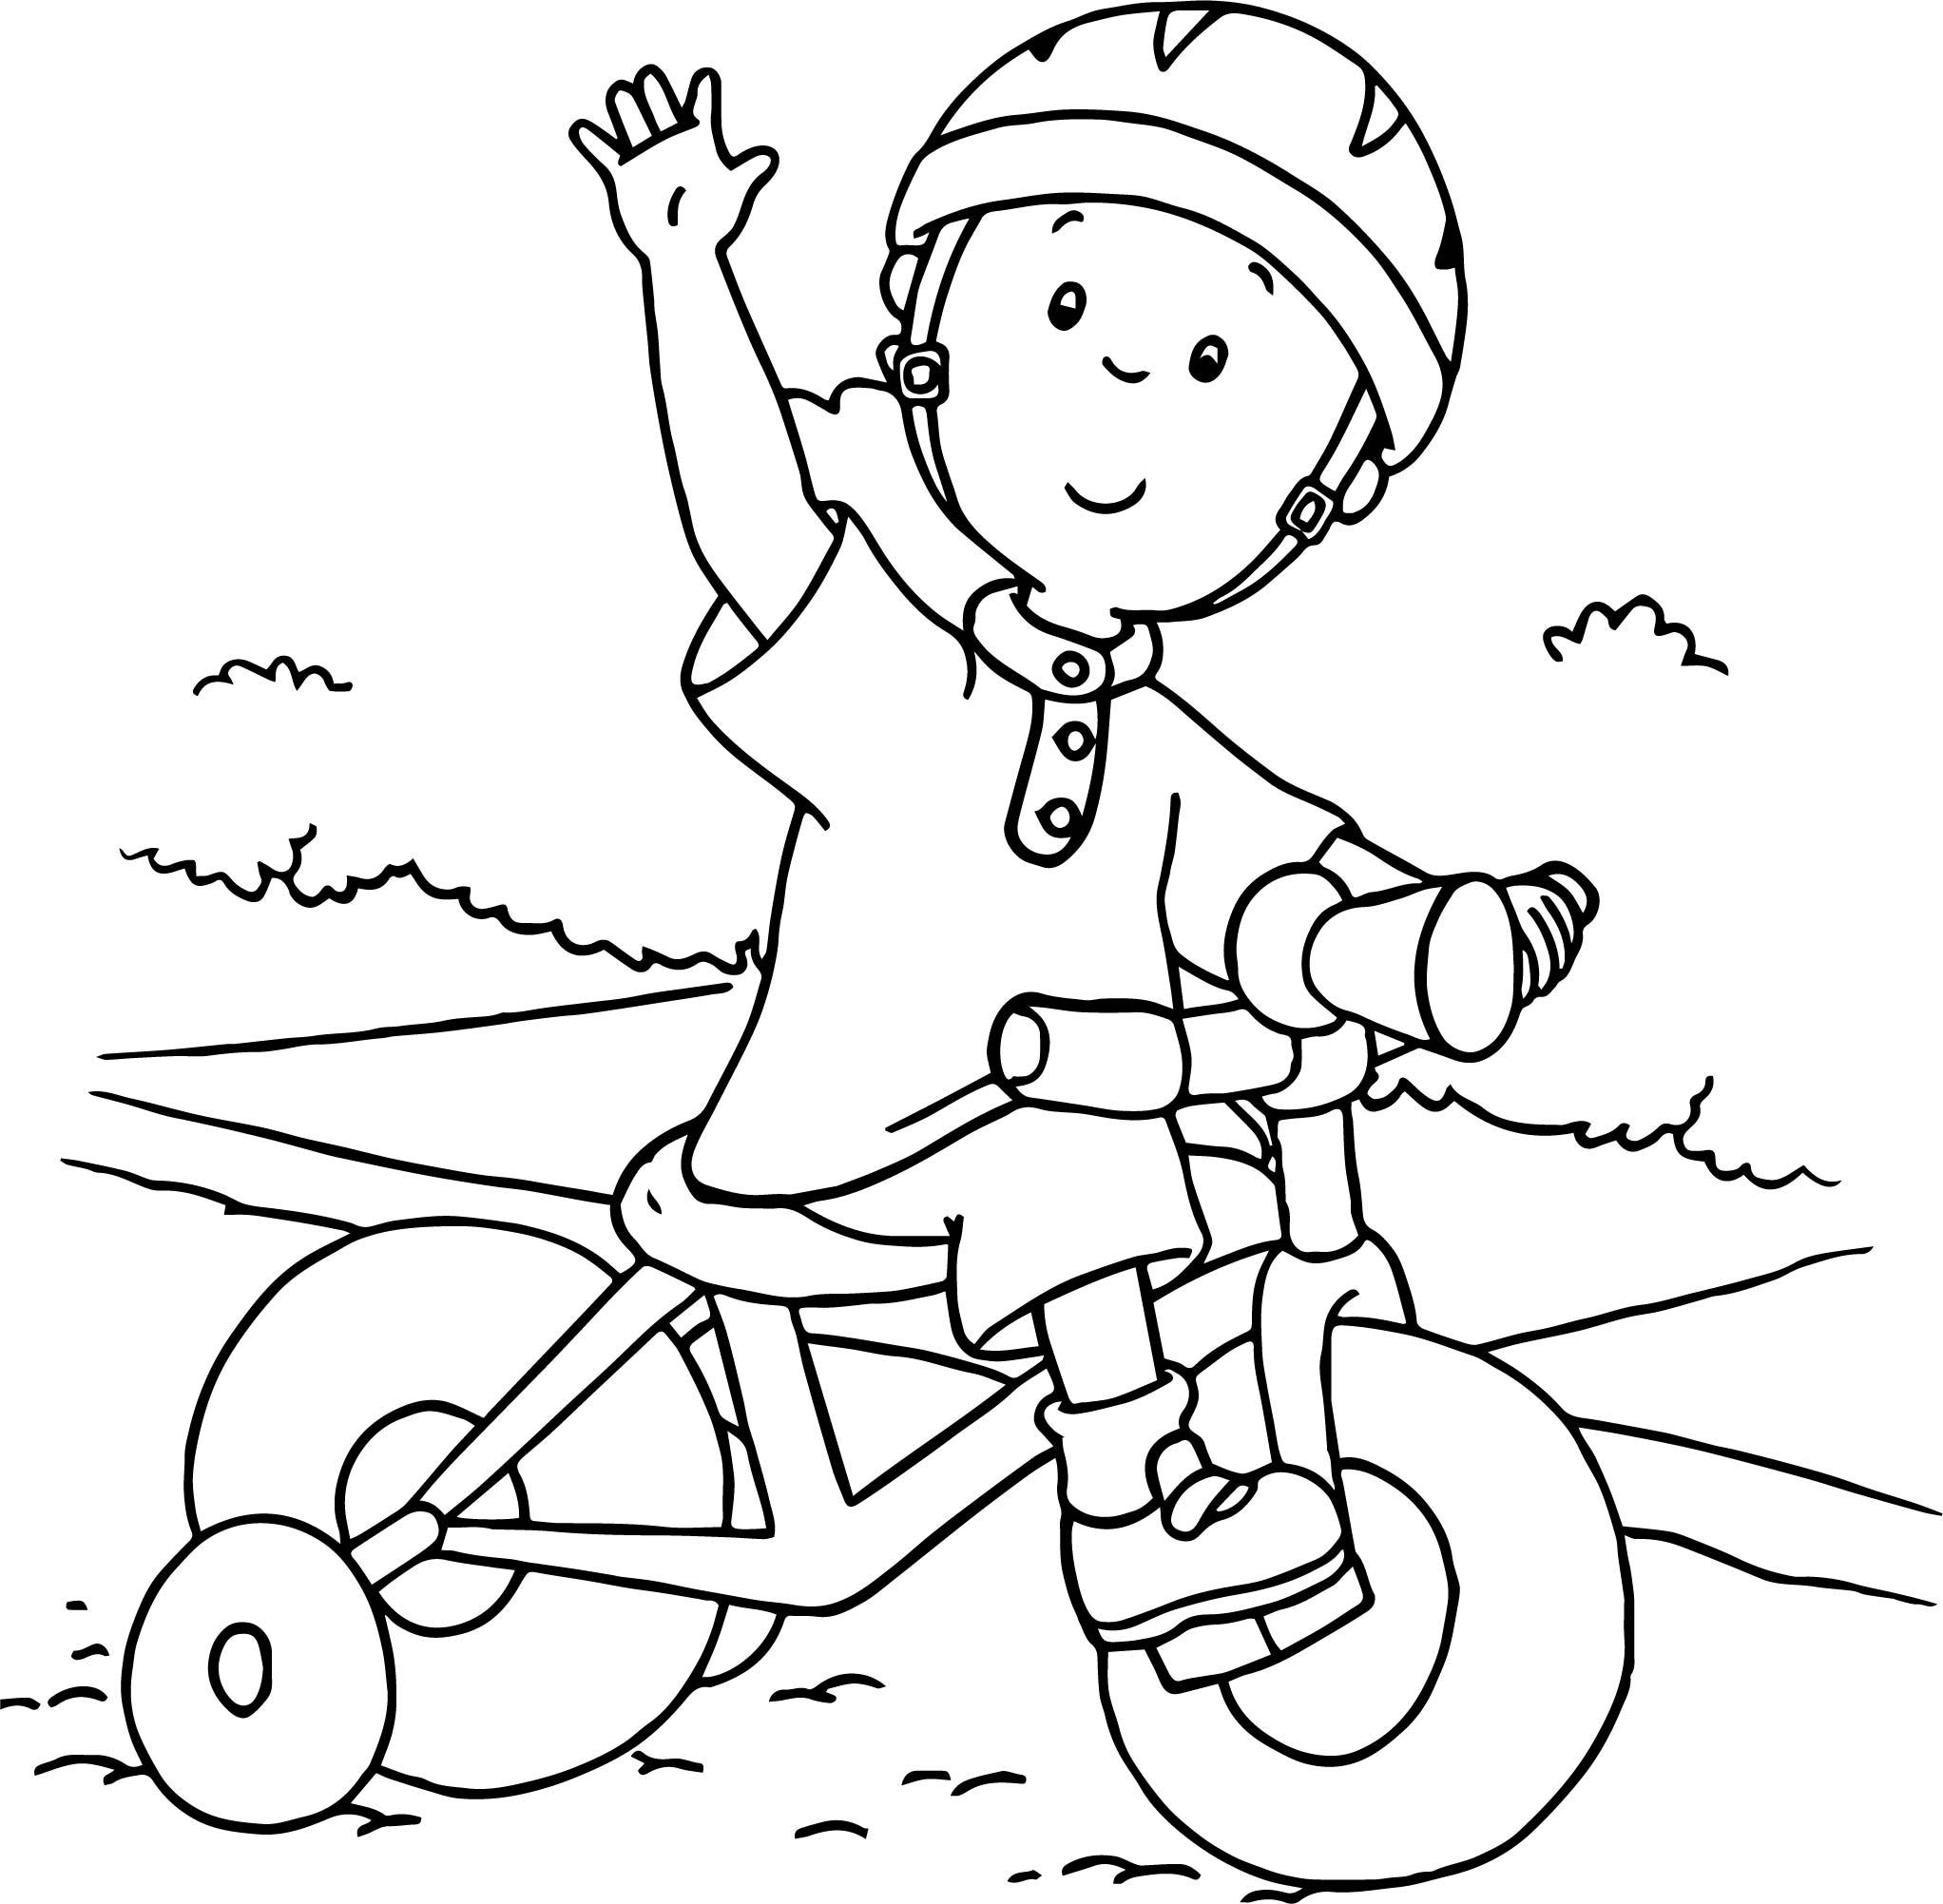 Caillou Driving Biycle Coloring Page